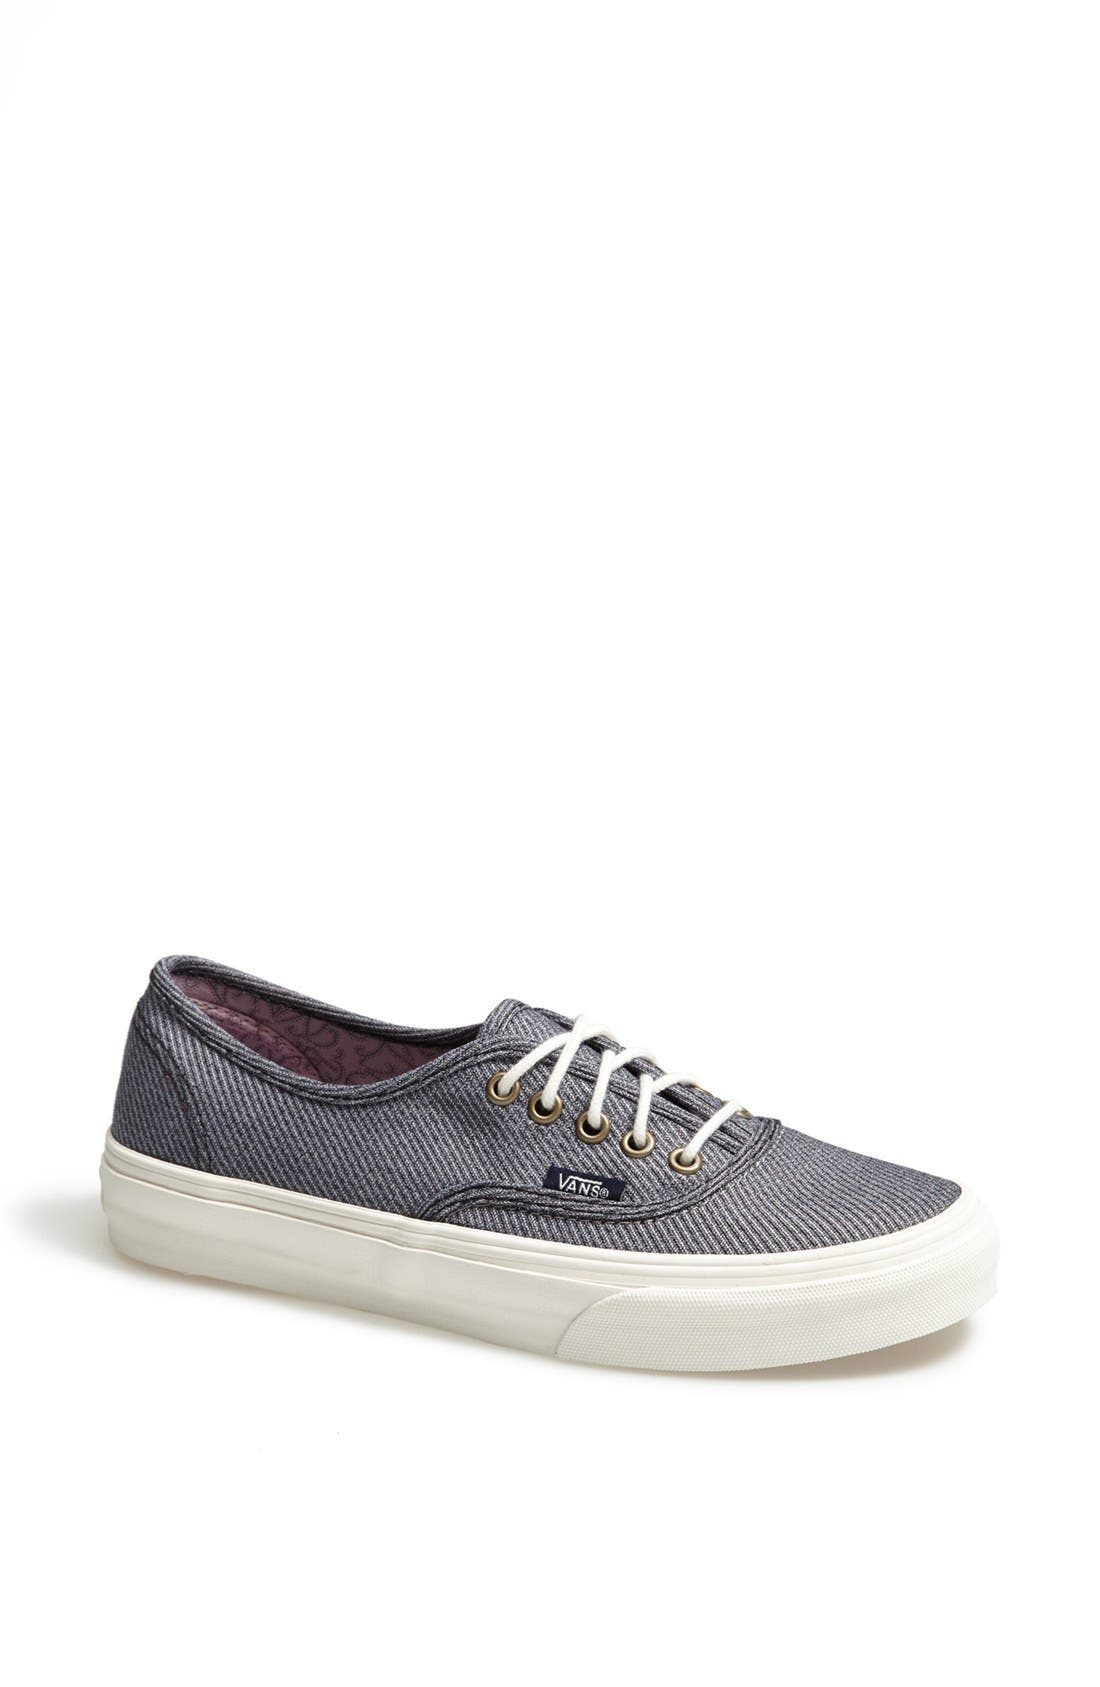 Alternate Image 1 Selected - Vans 'Authentic - Slim' Sneaker (Women)